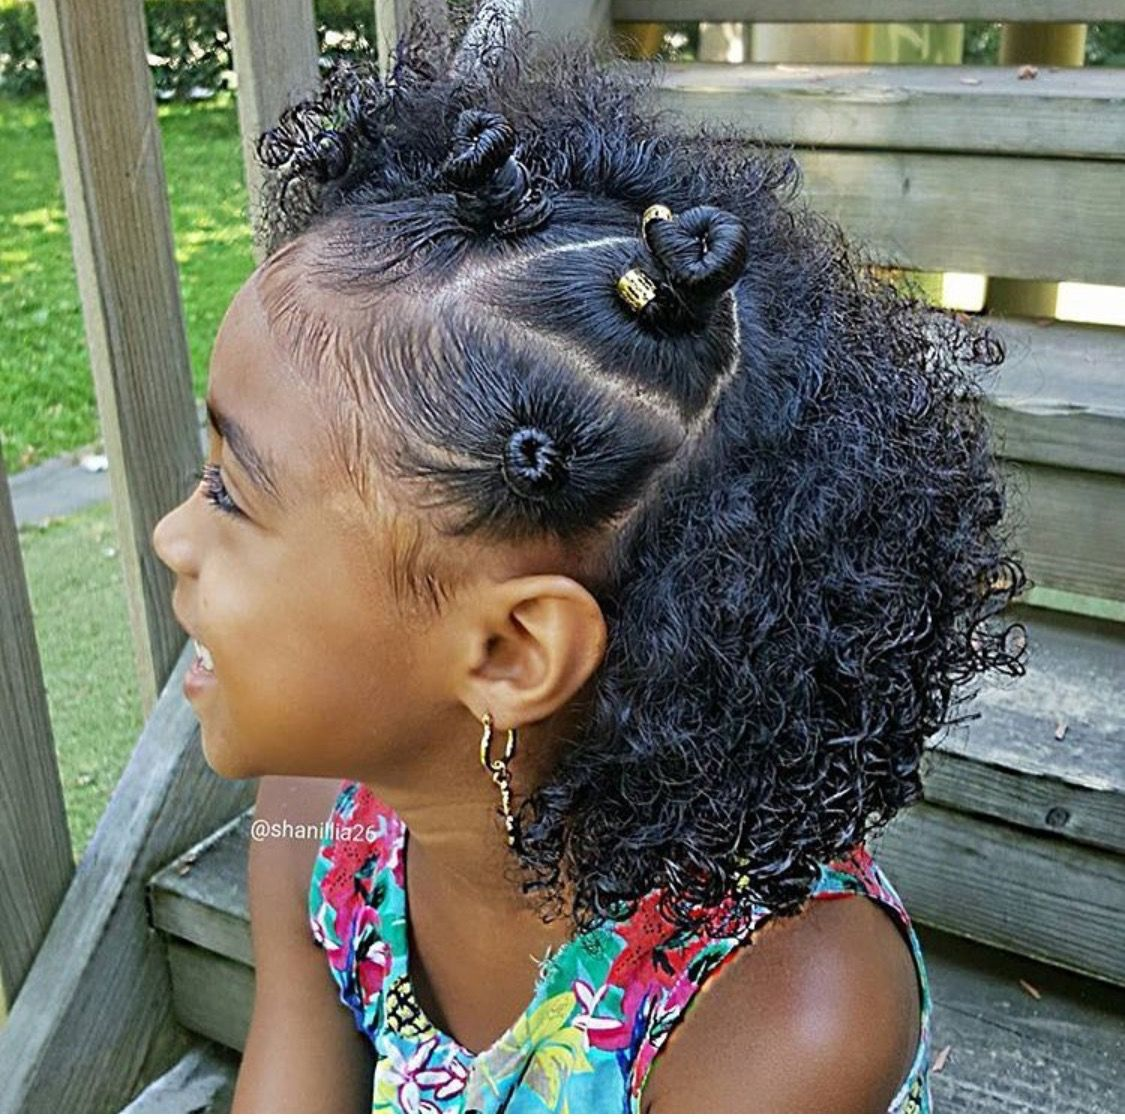 pin by rosa gonzalez on lil lady doo's | girl hairstyles